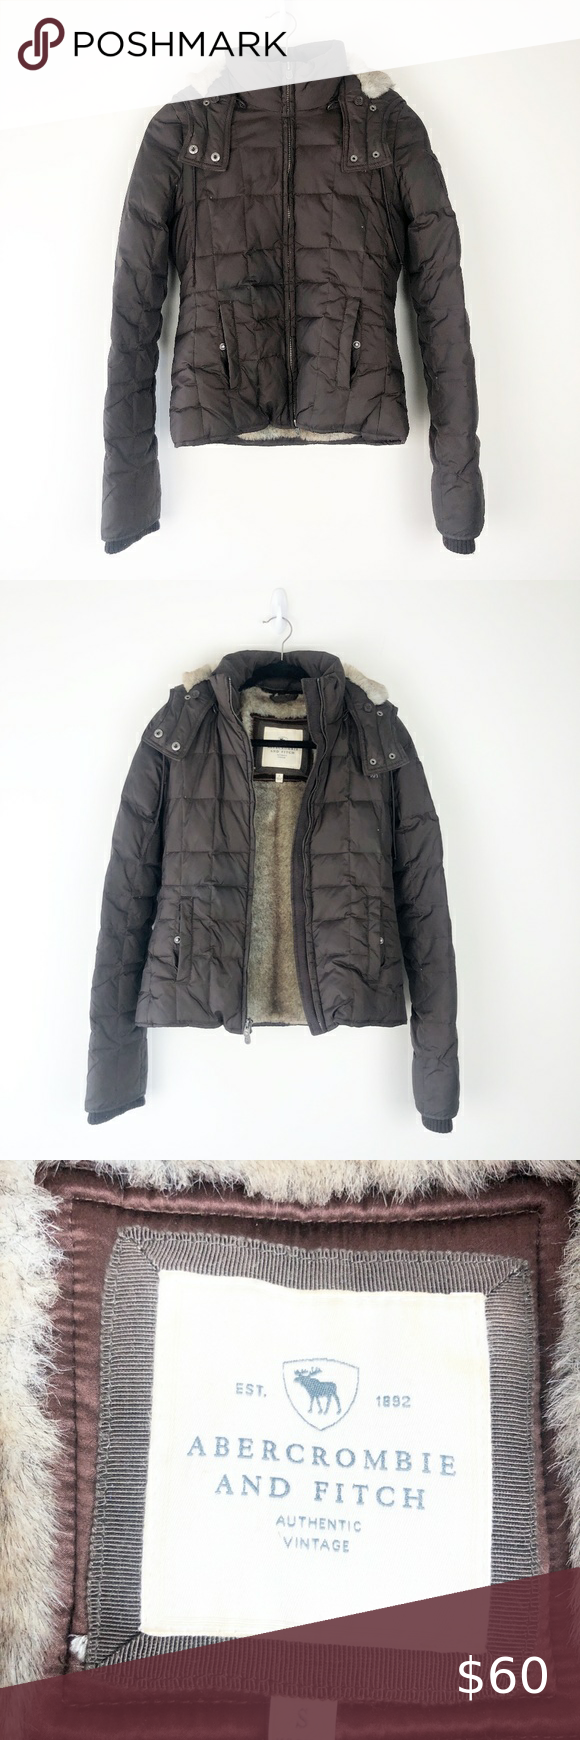 Abercrombie And Fitch Fur Lined Puffer Jacket Abercrombie Women Women S Puffer Coats Abercrombie And Fitch Jackets [ 1740 x 580 Pixel ]